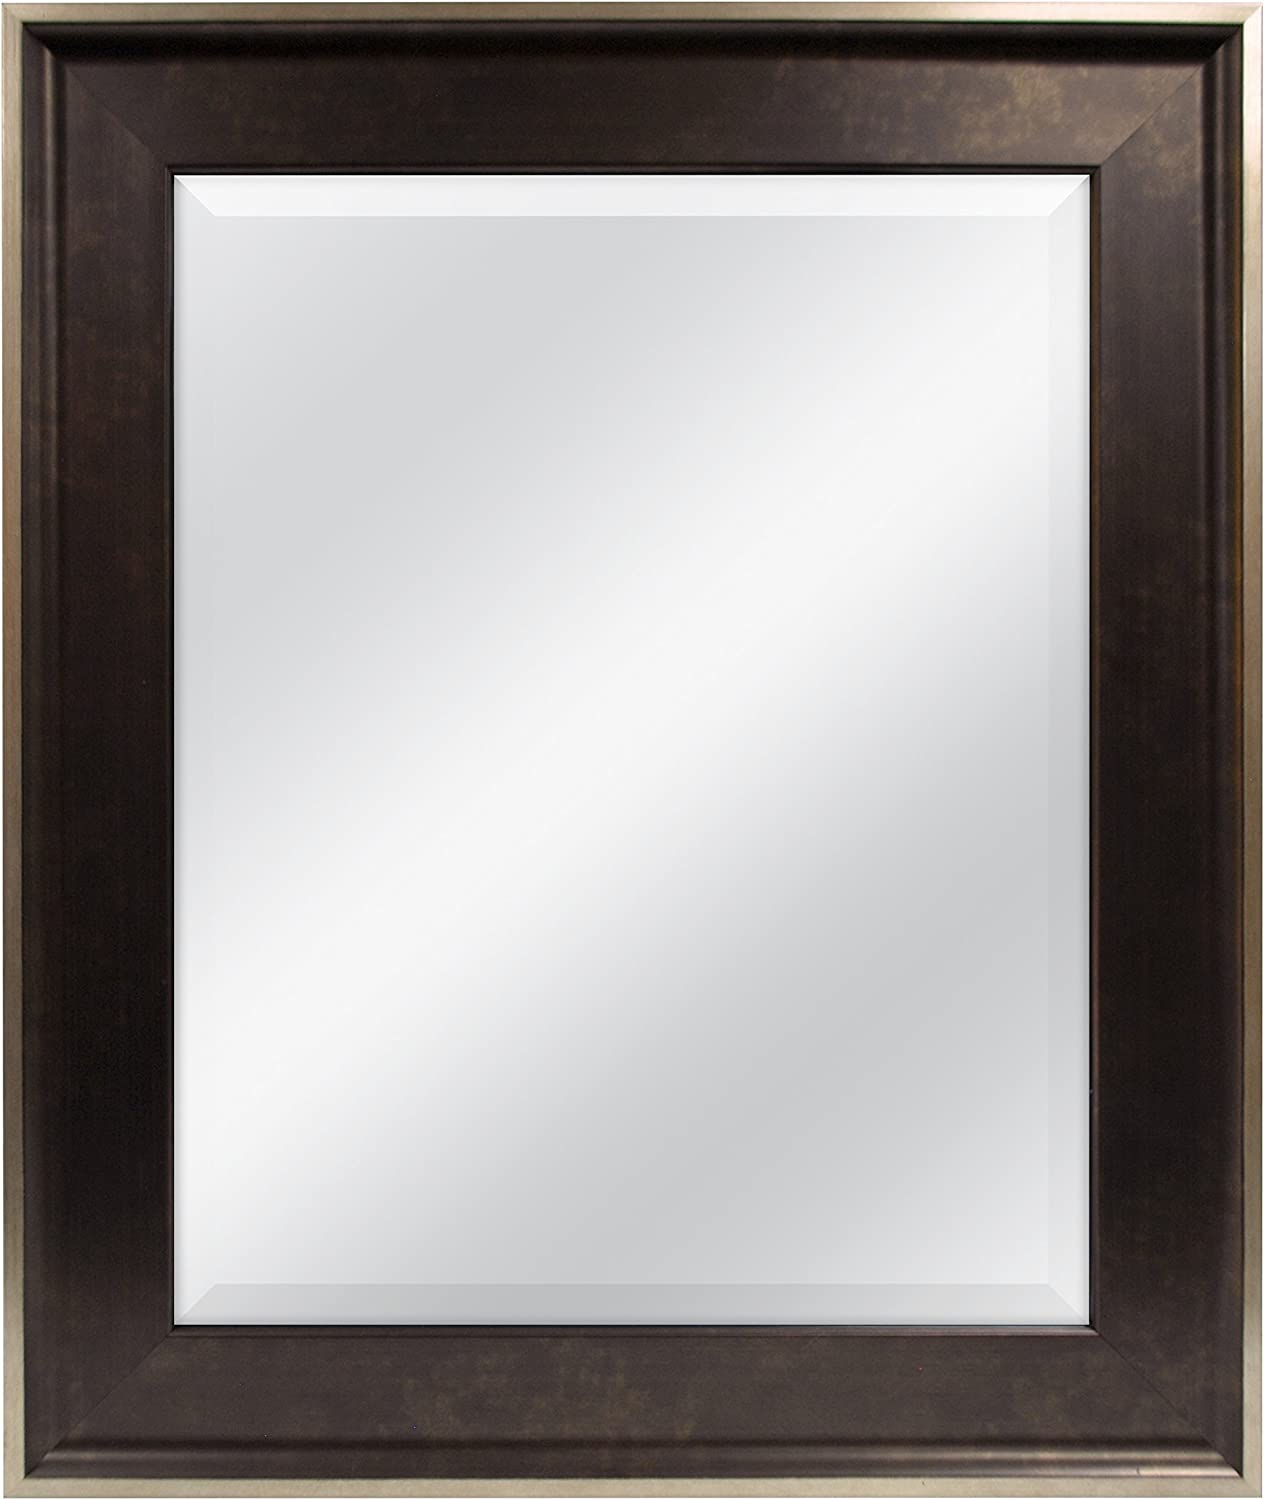 MCS 16 by 20-Inch Beveled Mirror, 22 by 16-Inch, Champagne Edge Finish, Two-Tone Bronze